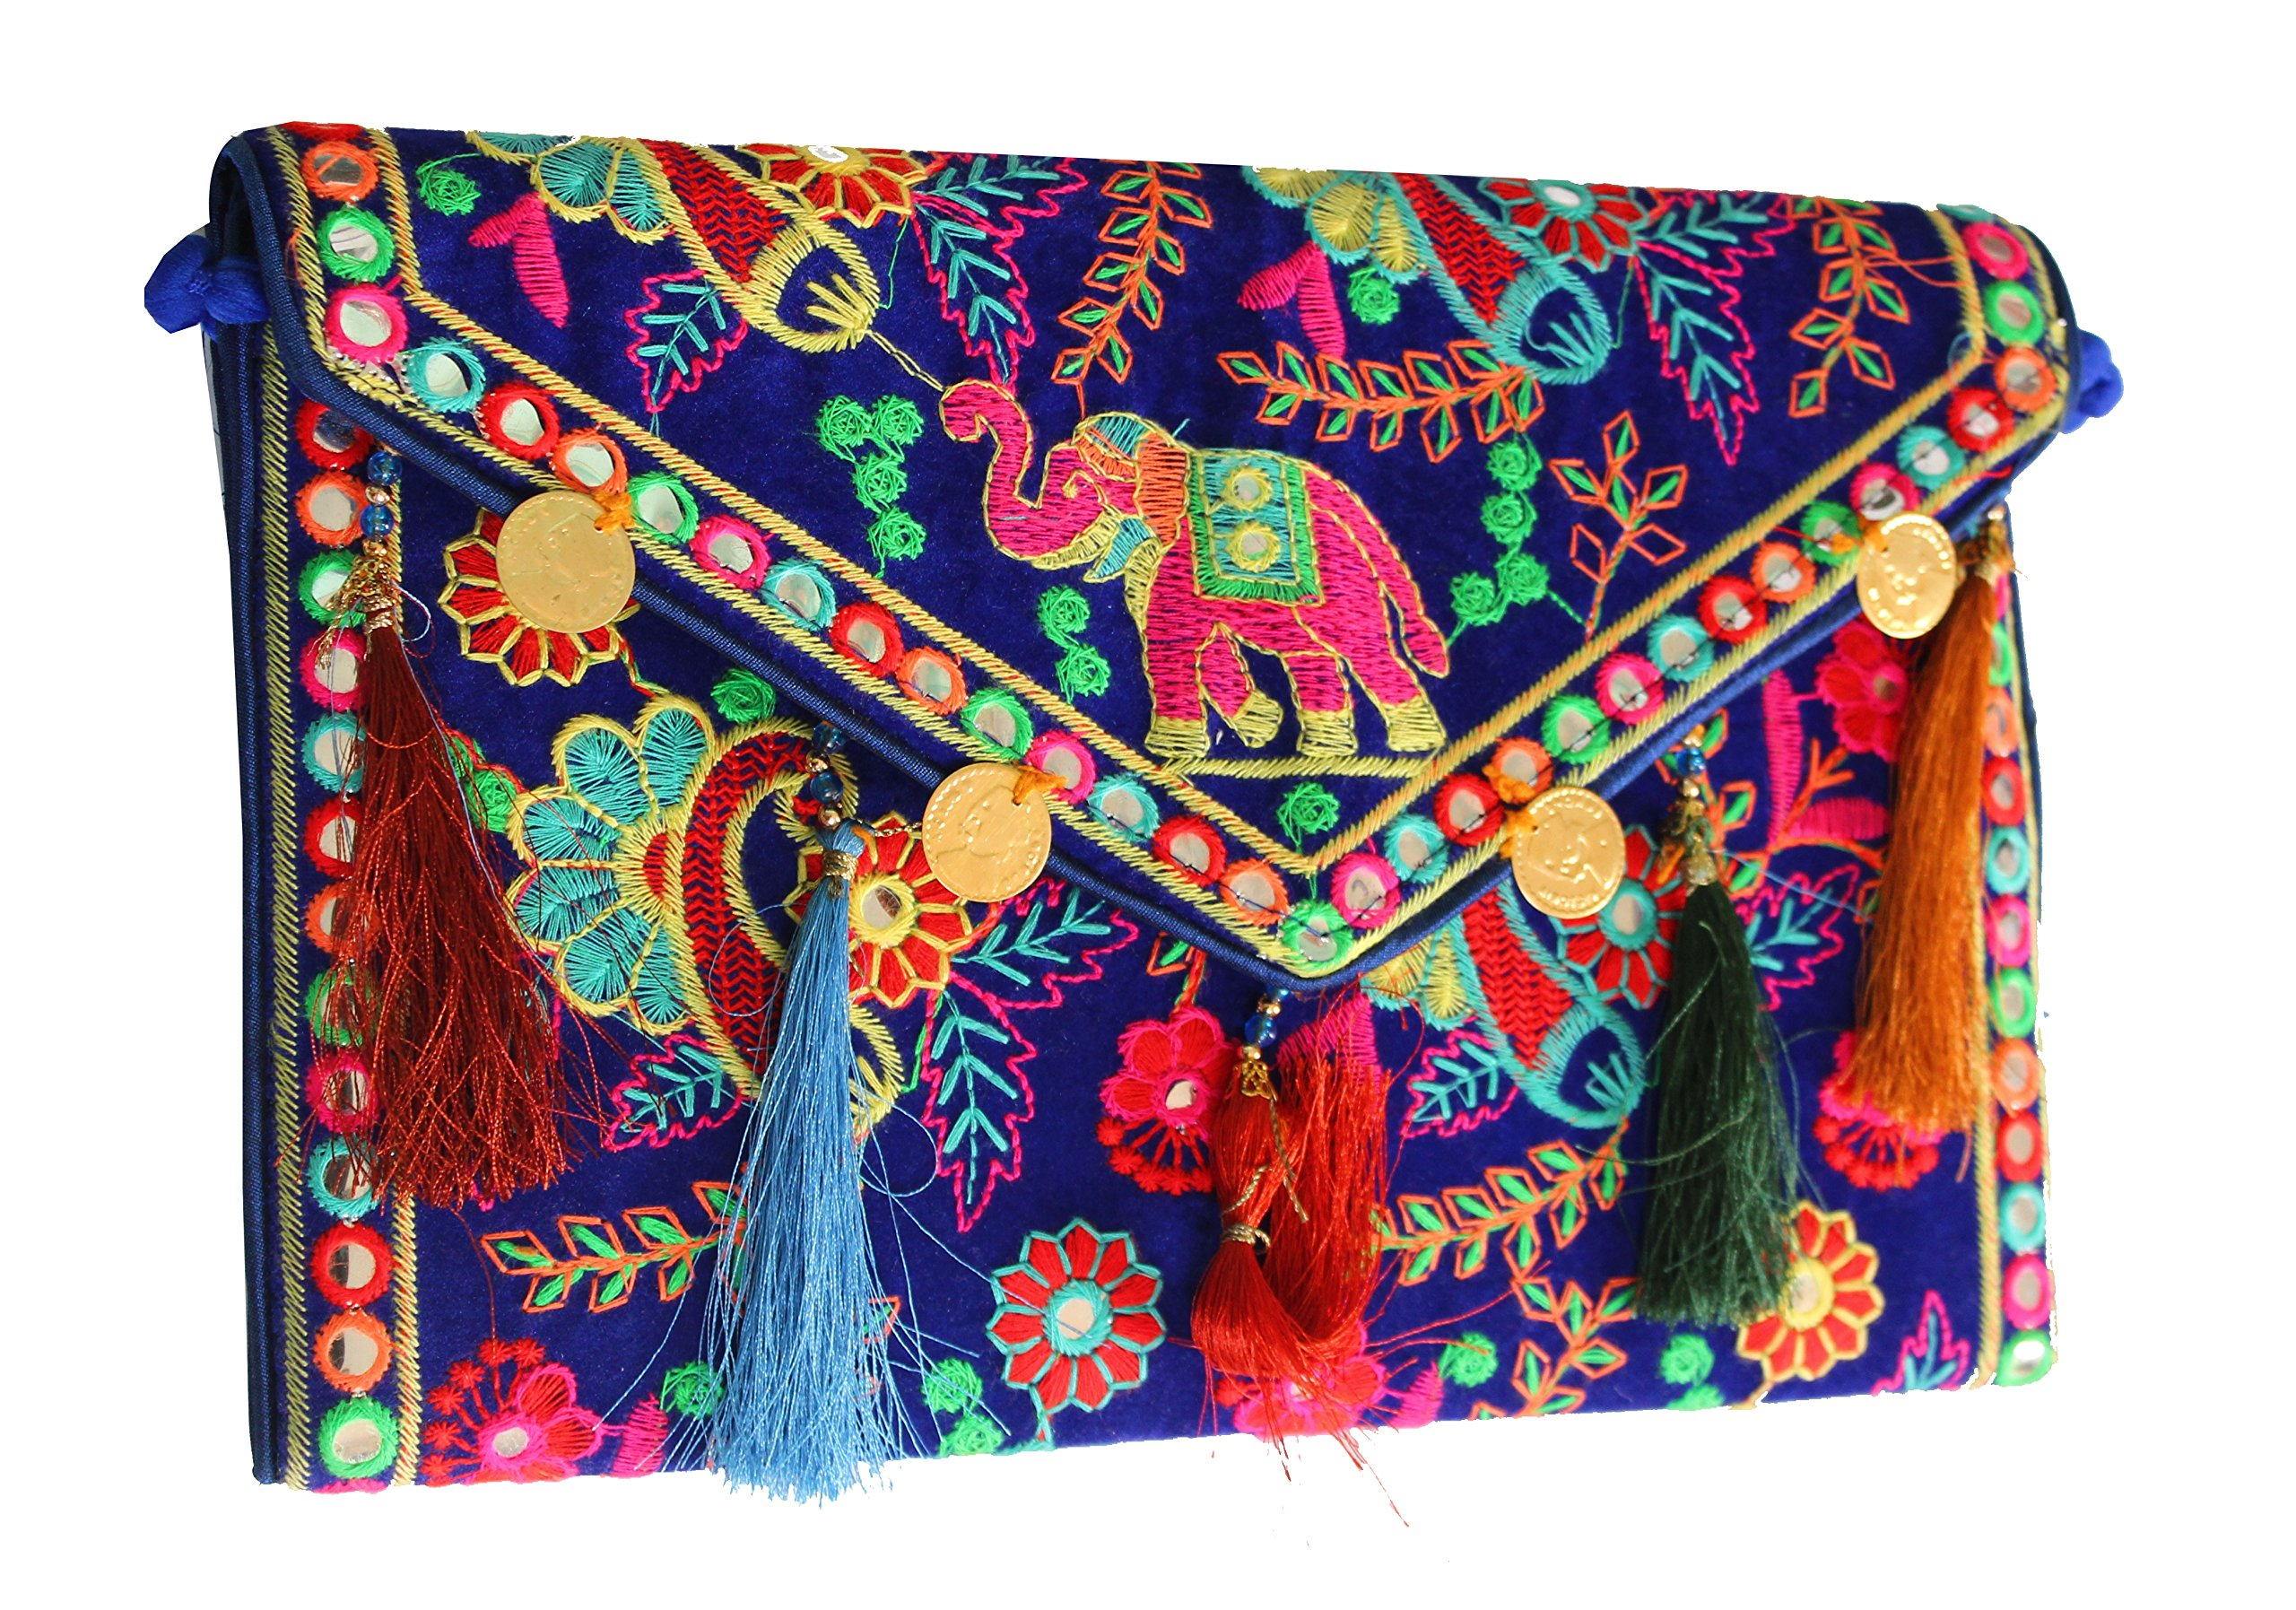 Hippie Handmade Clutch Purse for women Cotton Elephant Embroidery coin work Ethnic Vintage bohemian Tribal Banjara Blue Sling Bags